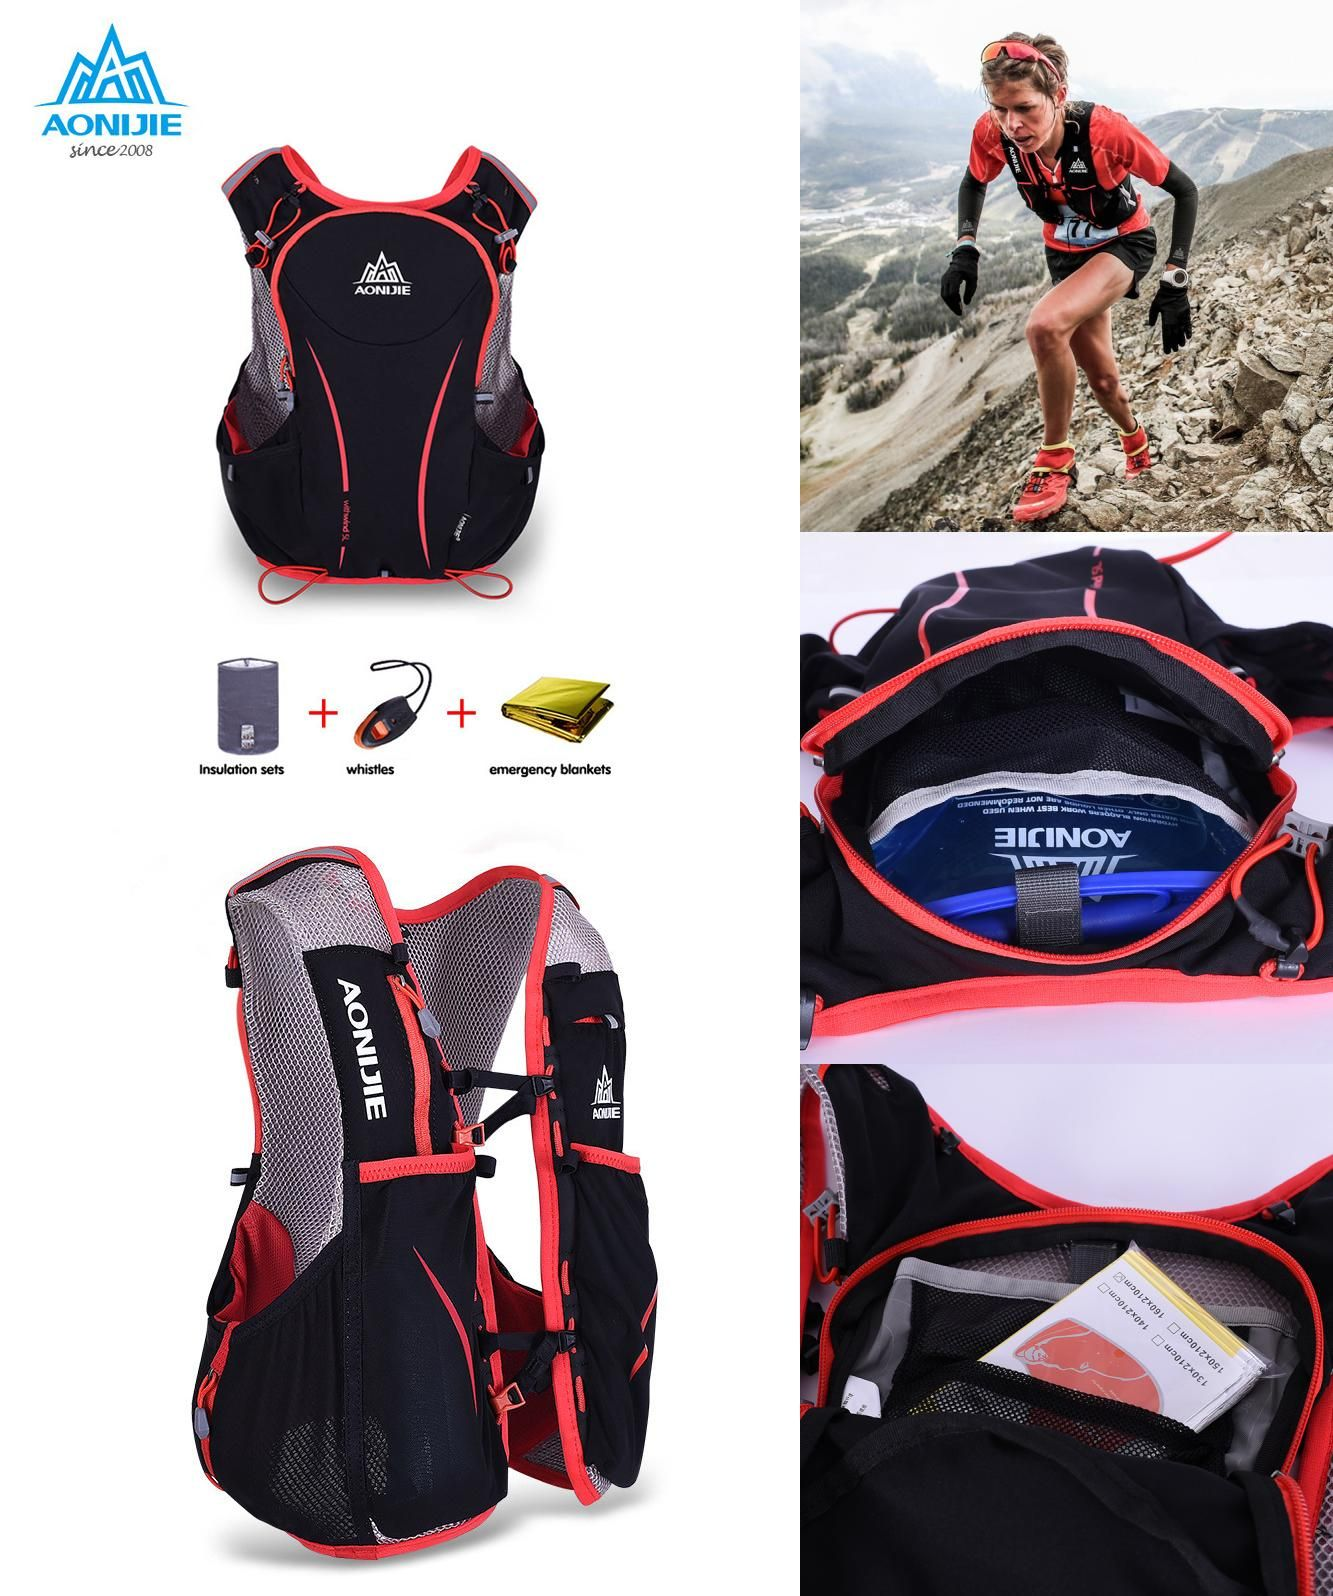 f37f0efa52 [Visit to Buy] AONIJIE 5L Outdoor Sports Backpack Women / Men Marathon  Hydration Vest Pack for Exchange Cycling Hiking Water Bag #Advertisement